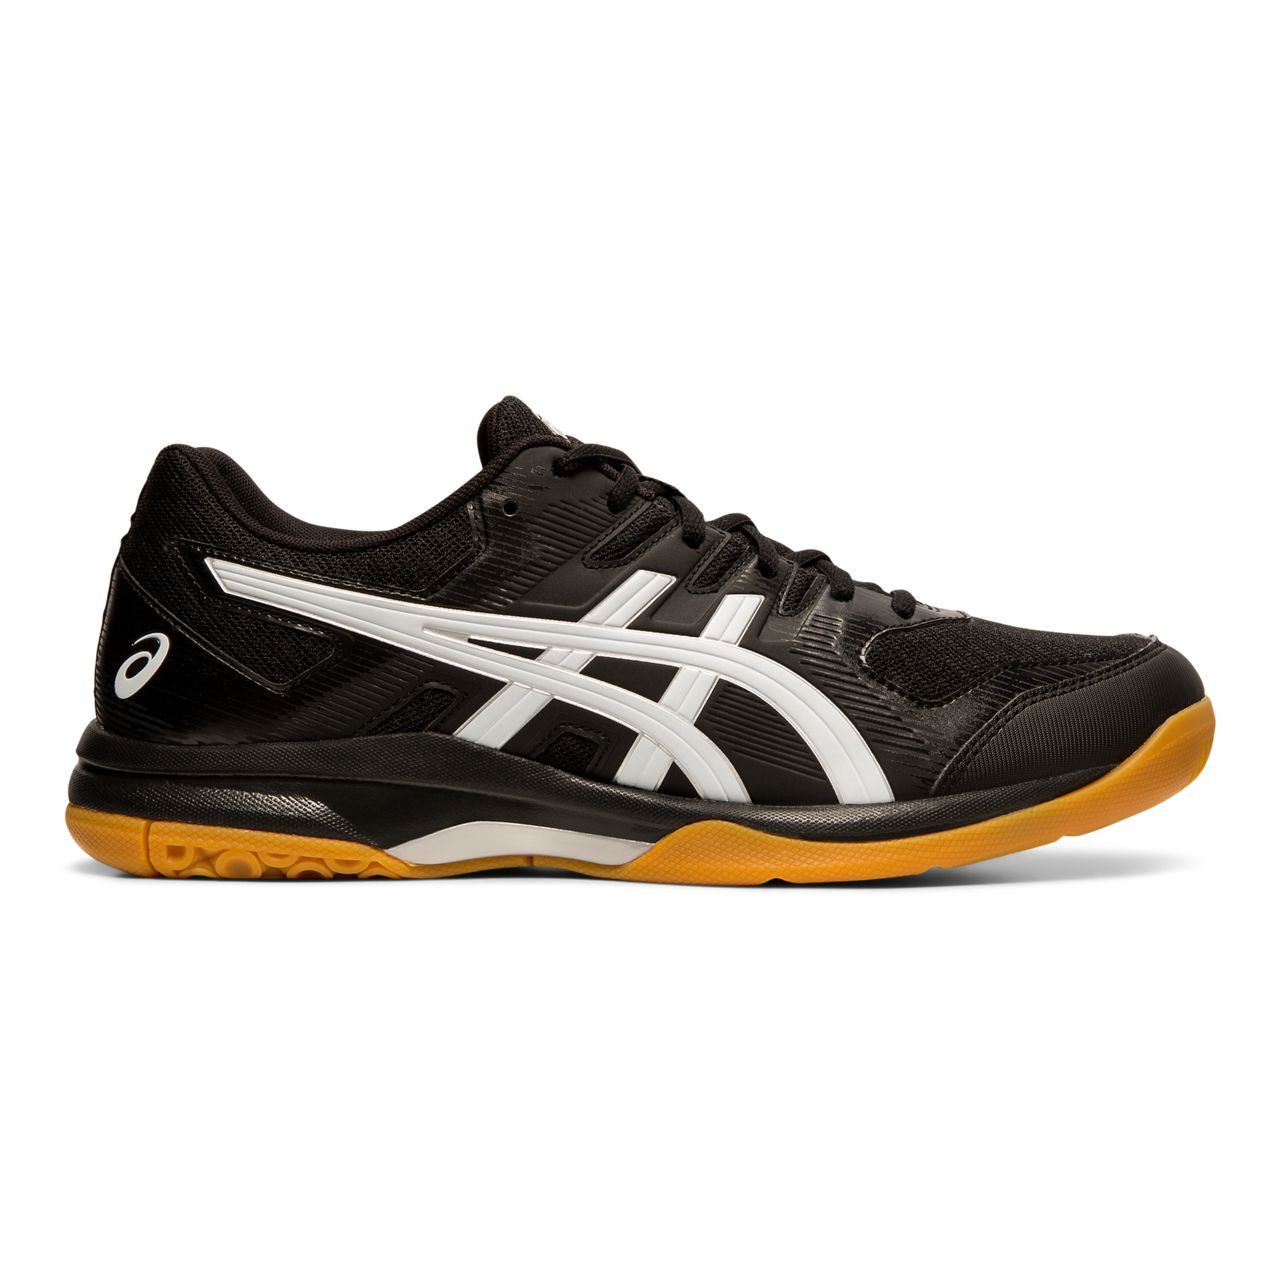 reliable quality popular brand 2019 wholesale price Asics Men's Gel-Rocket 9